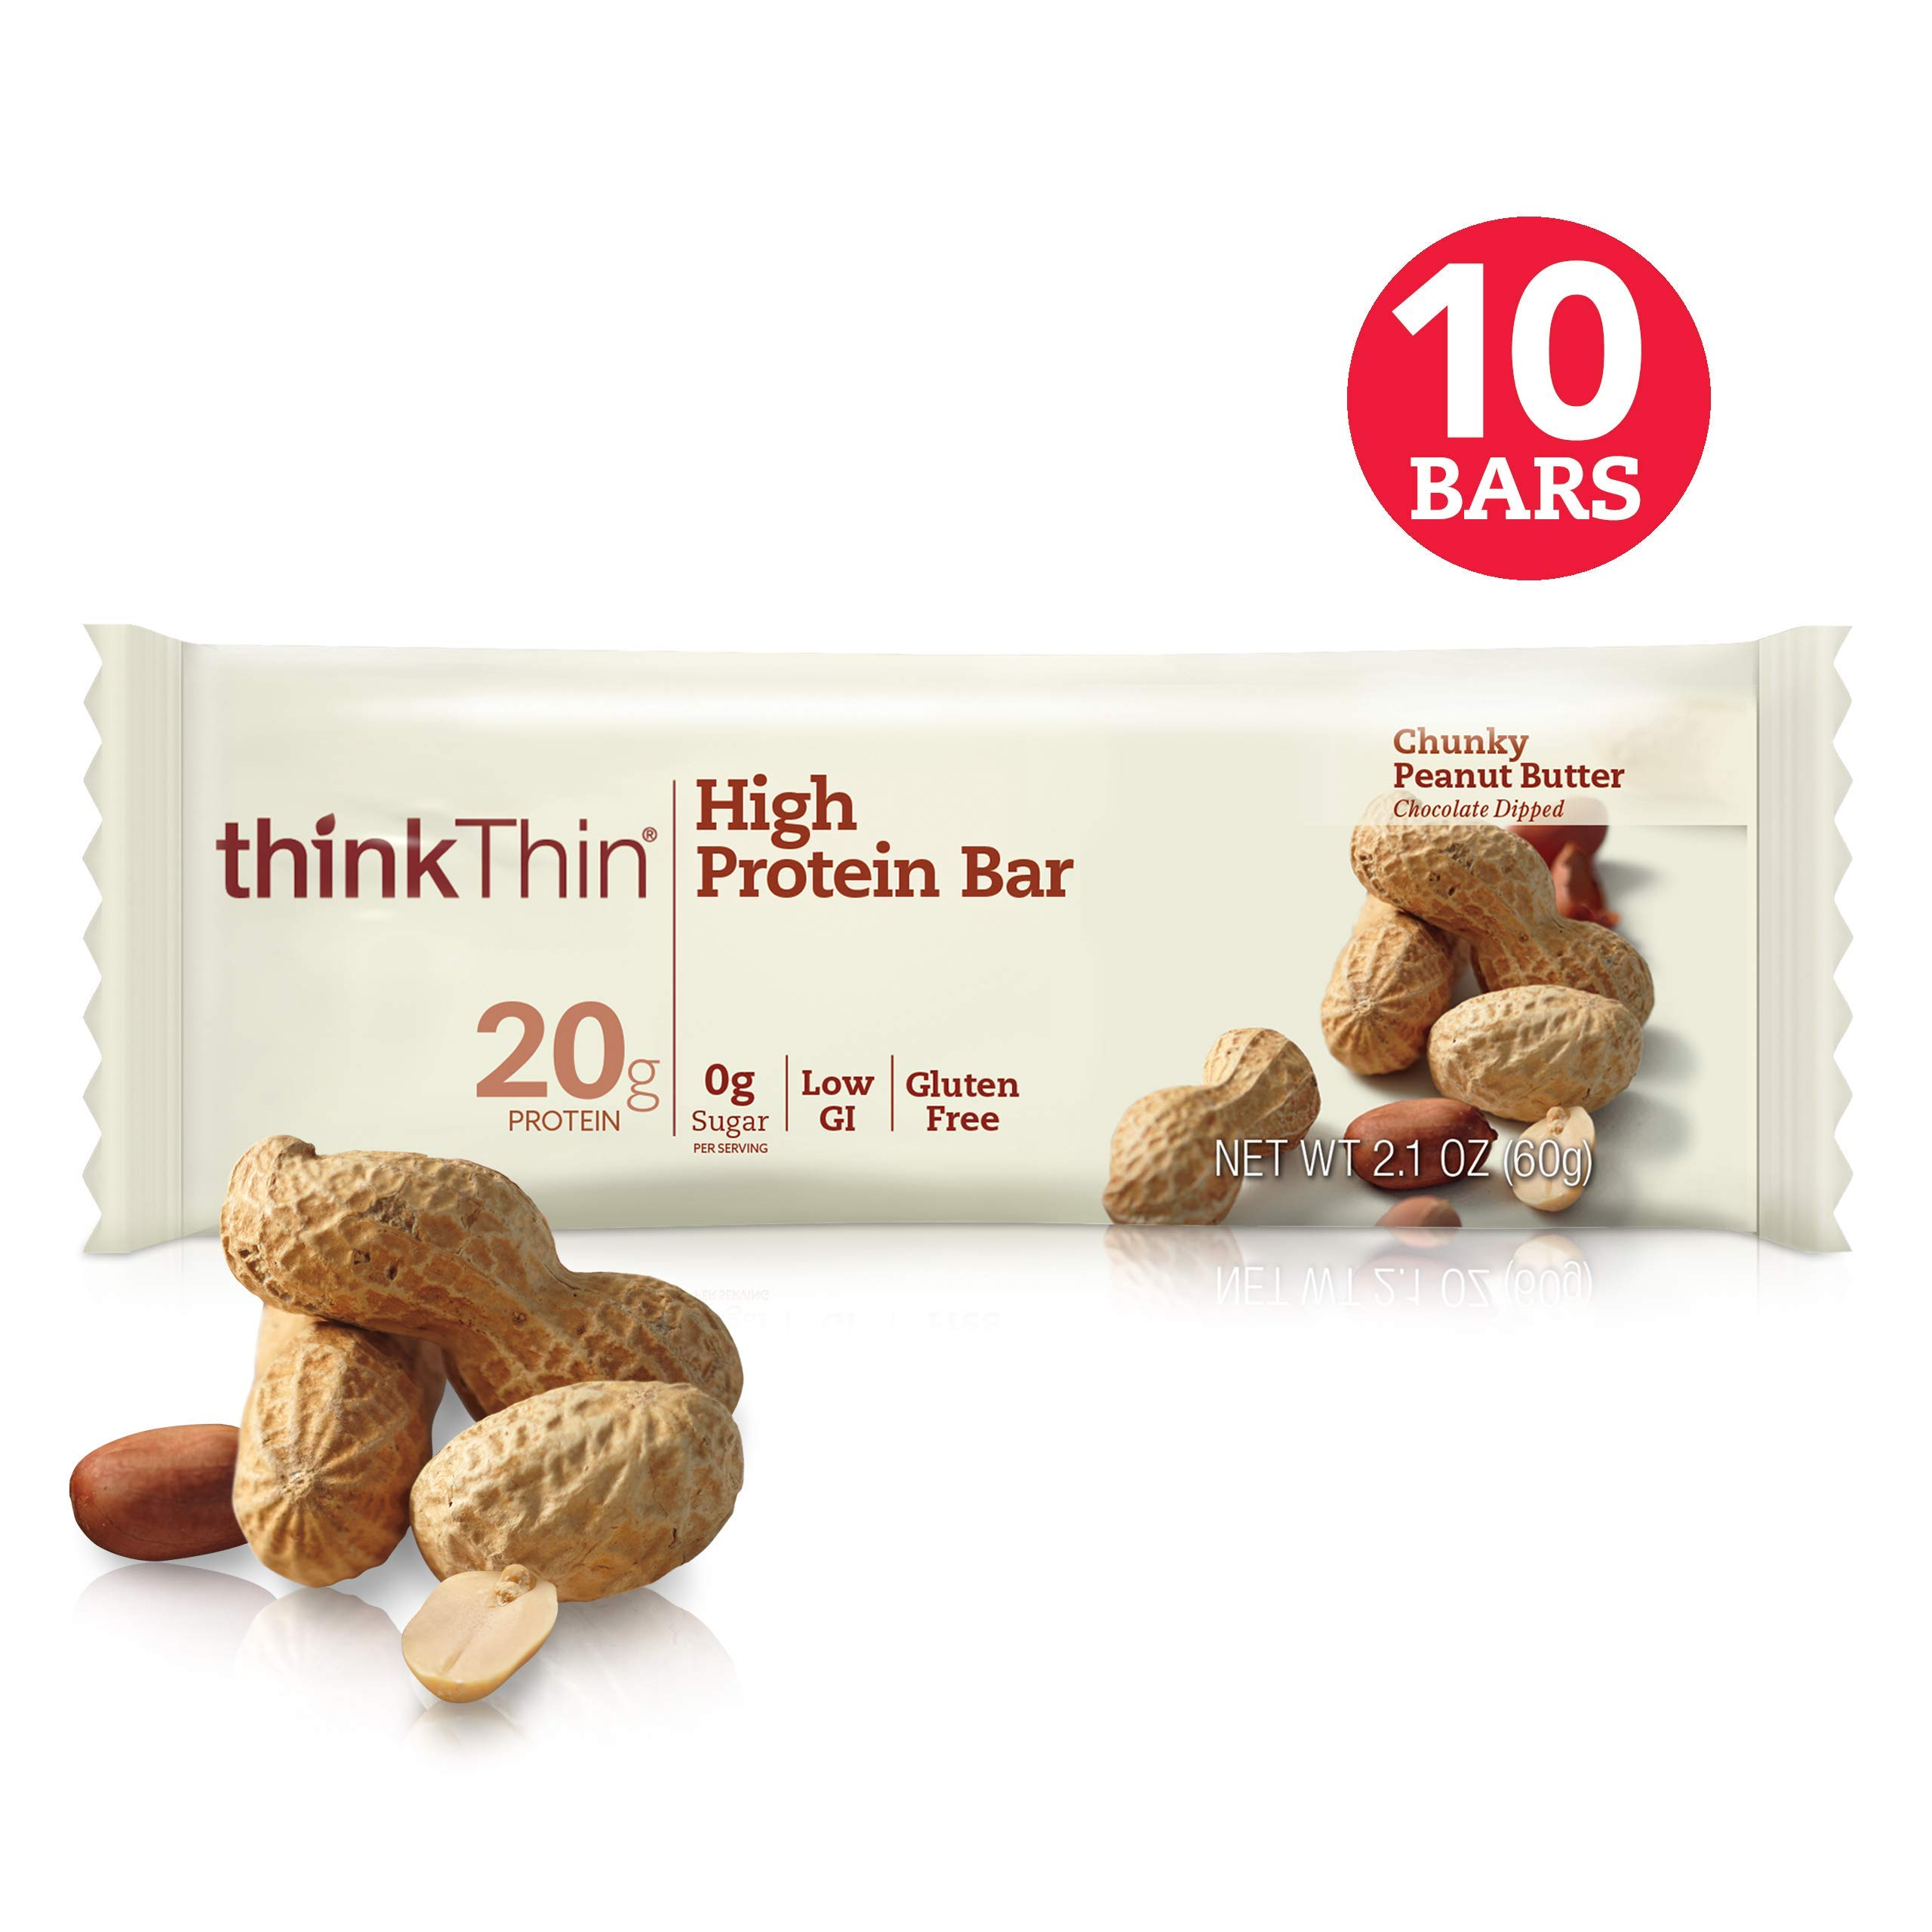 thinkThin High Protein Bars - Chunky Peanut Butter, 20g Protein, 0g Sugar, No Artificial Sweeteners, Gluten Free, GMO Free*, Best Nutritional Snack/Meal bar, 2.1 oz bar (10Count)